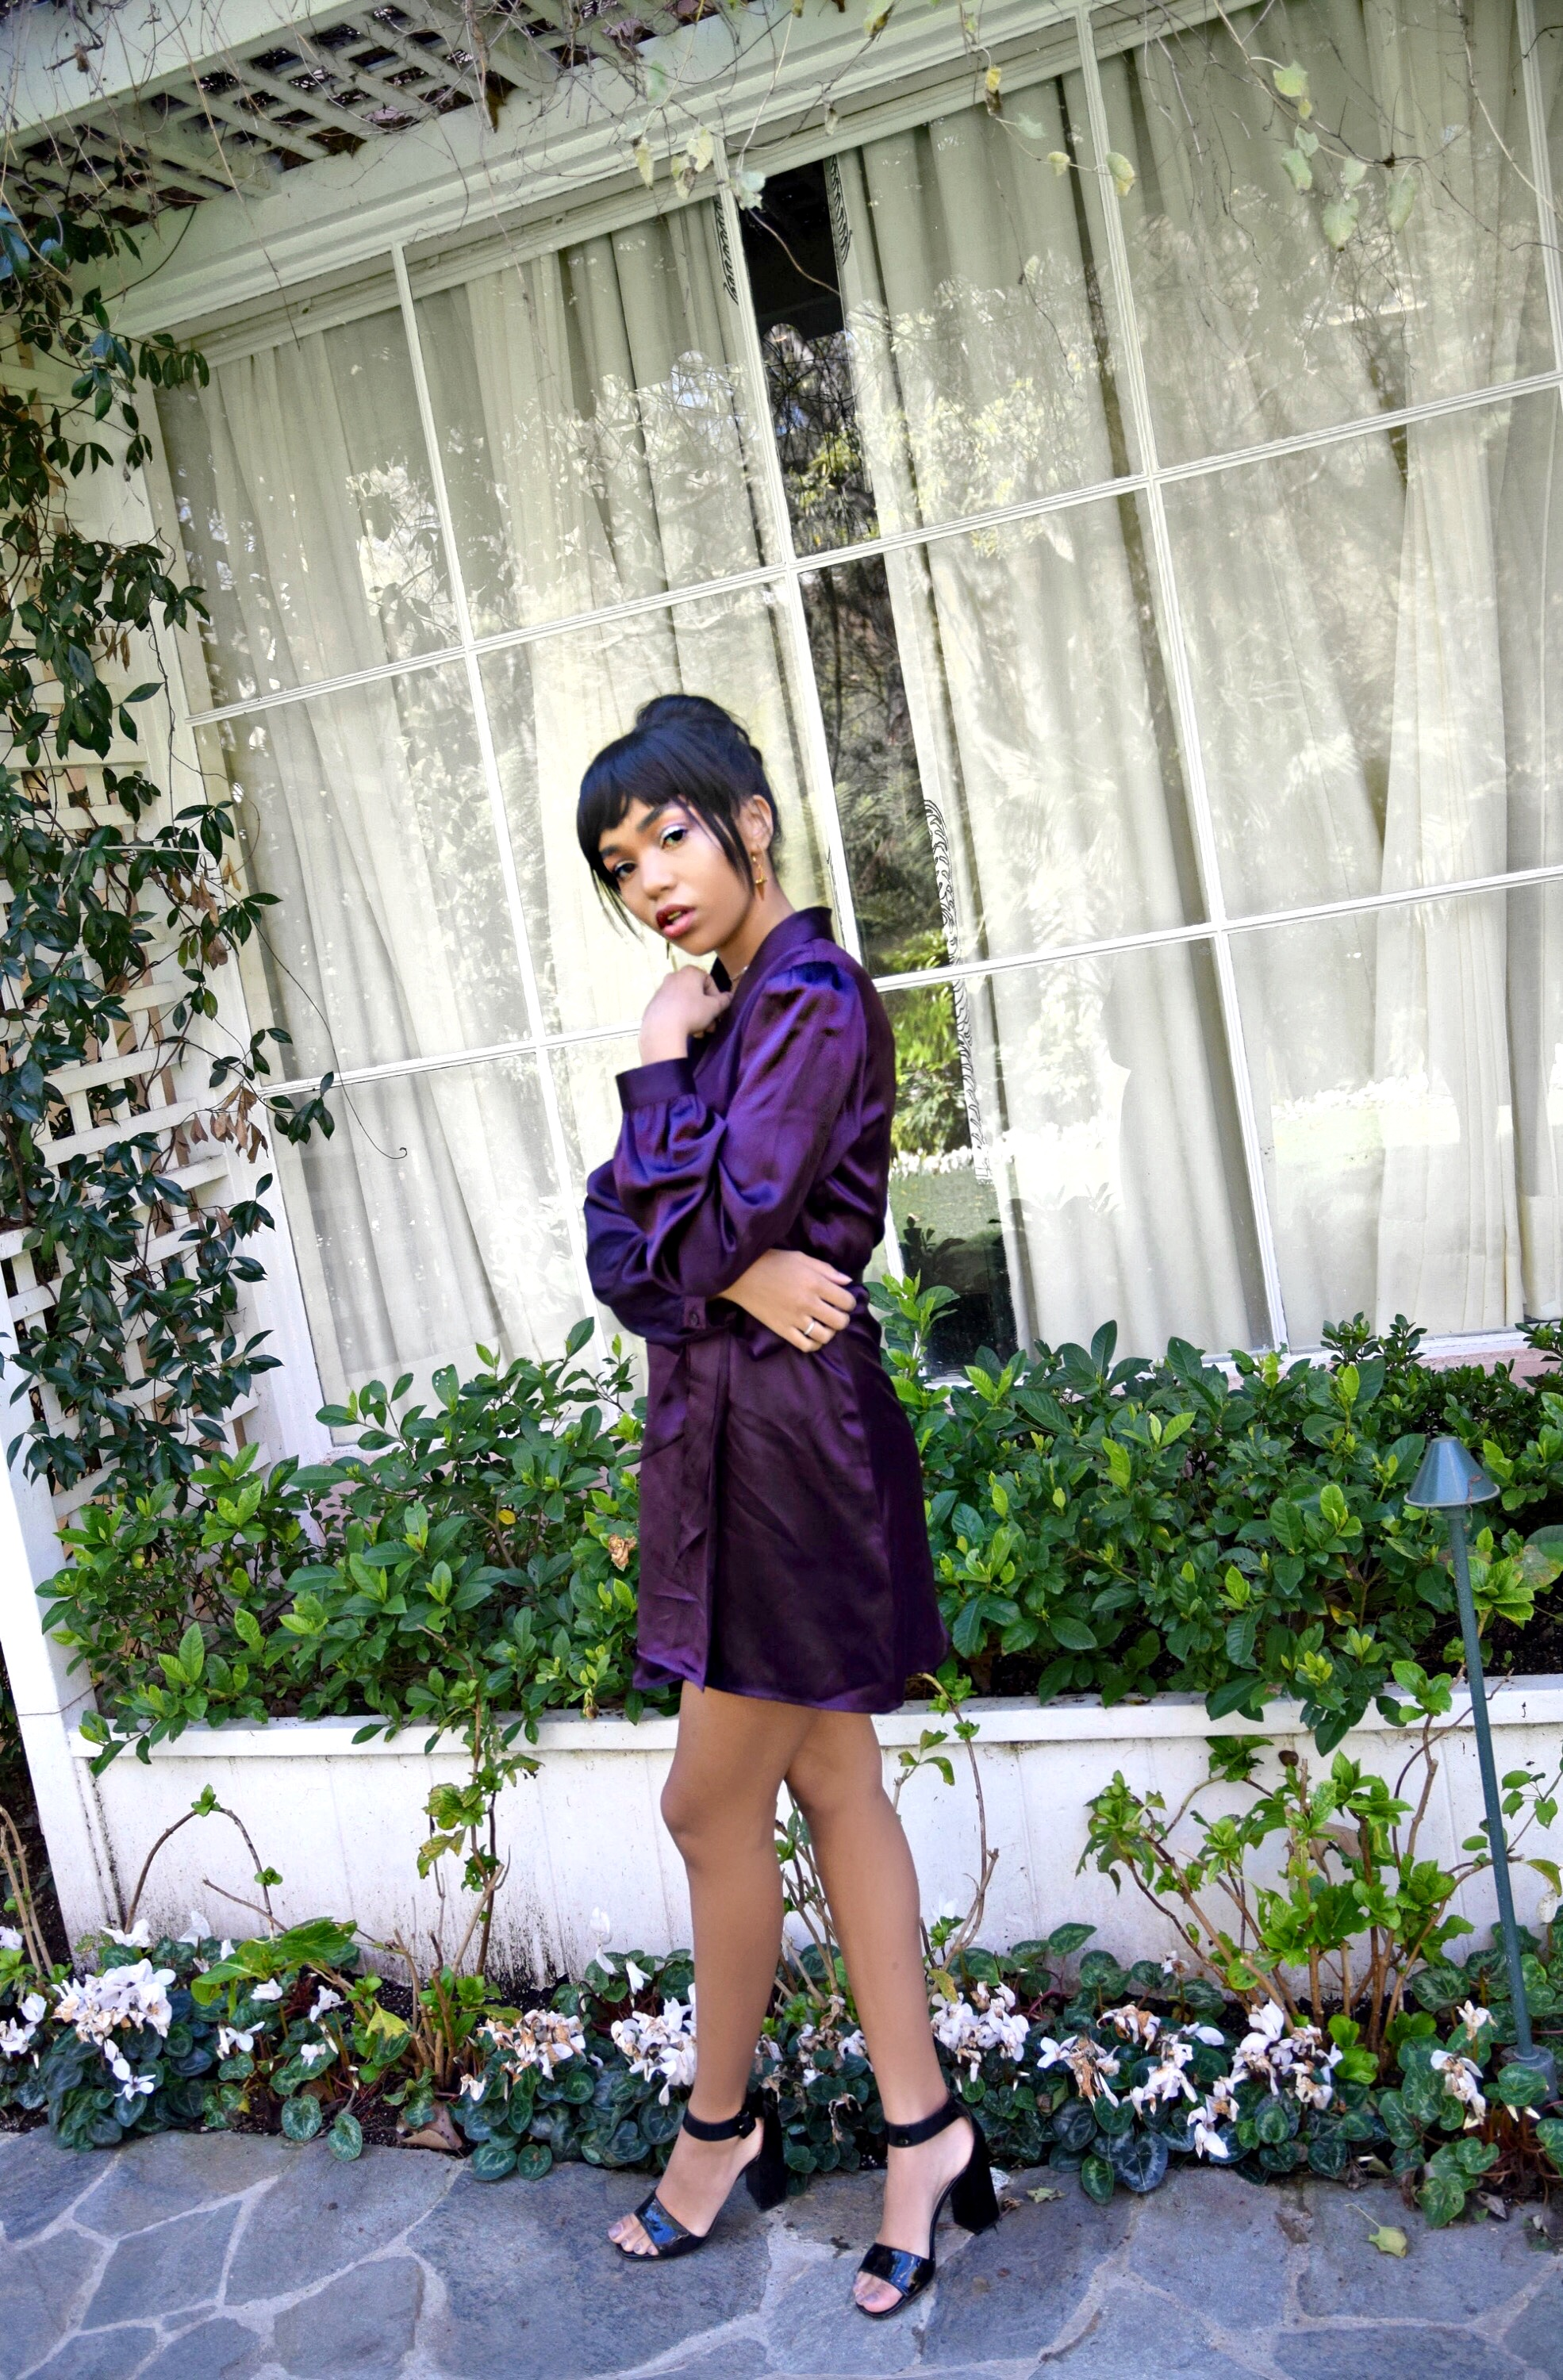 Flower Children // Spring Street Style // Personal Style Look // Purple Reformation Wrap Dress // Vida Kush Golden Rose Layered Necklace & Choker // Luv Aj Cross Hoop Earrings // Prada Black Chunky Heel Sandals // Chanel Acrylic CC Logo Clutch // Los Angeles Fashion Blogger Daphne Blunt: To Style, With Love